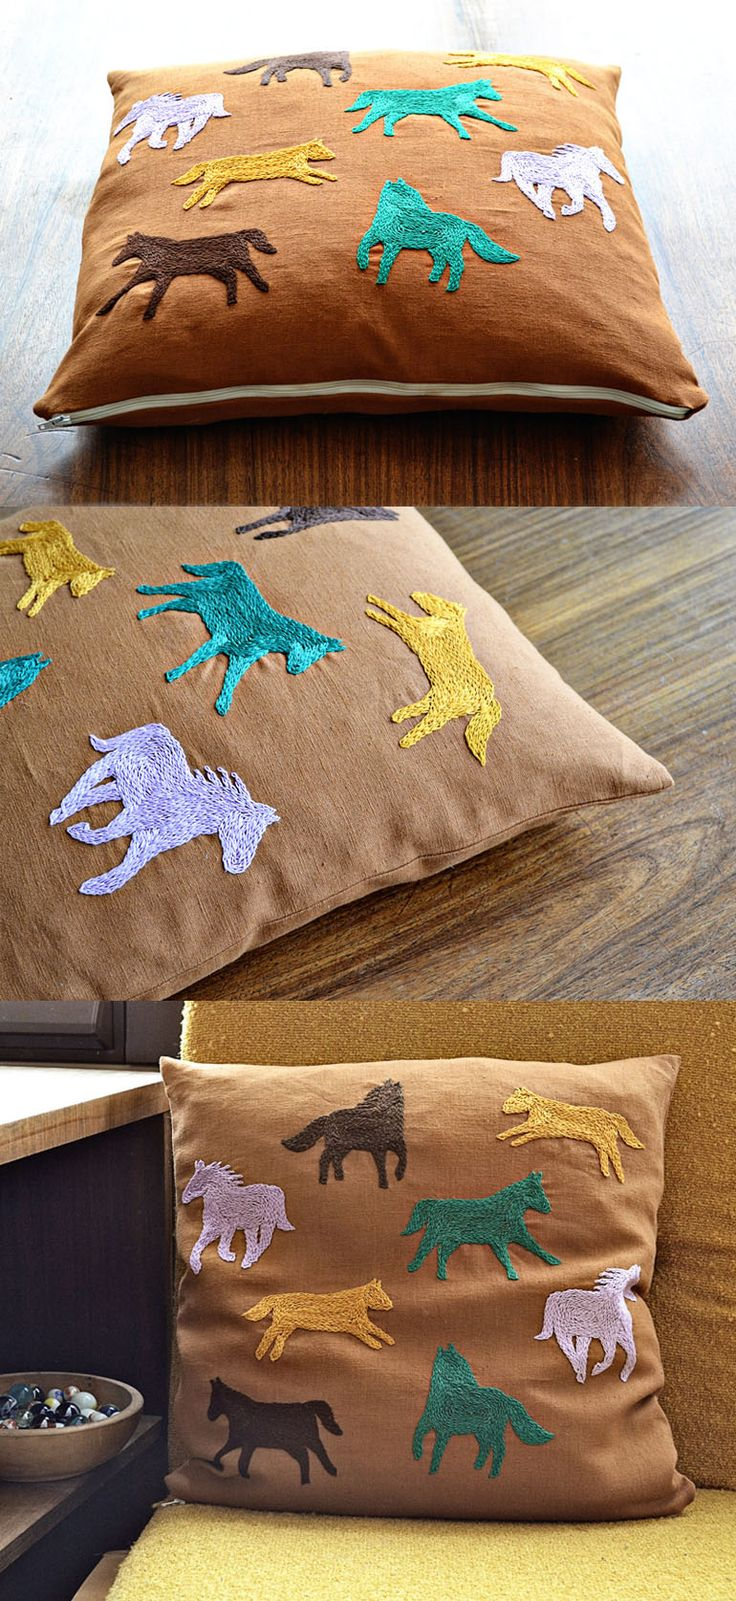 horse cushion cover embroidery pattern - rustic home decor